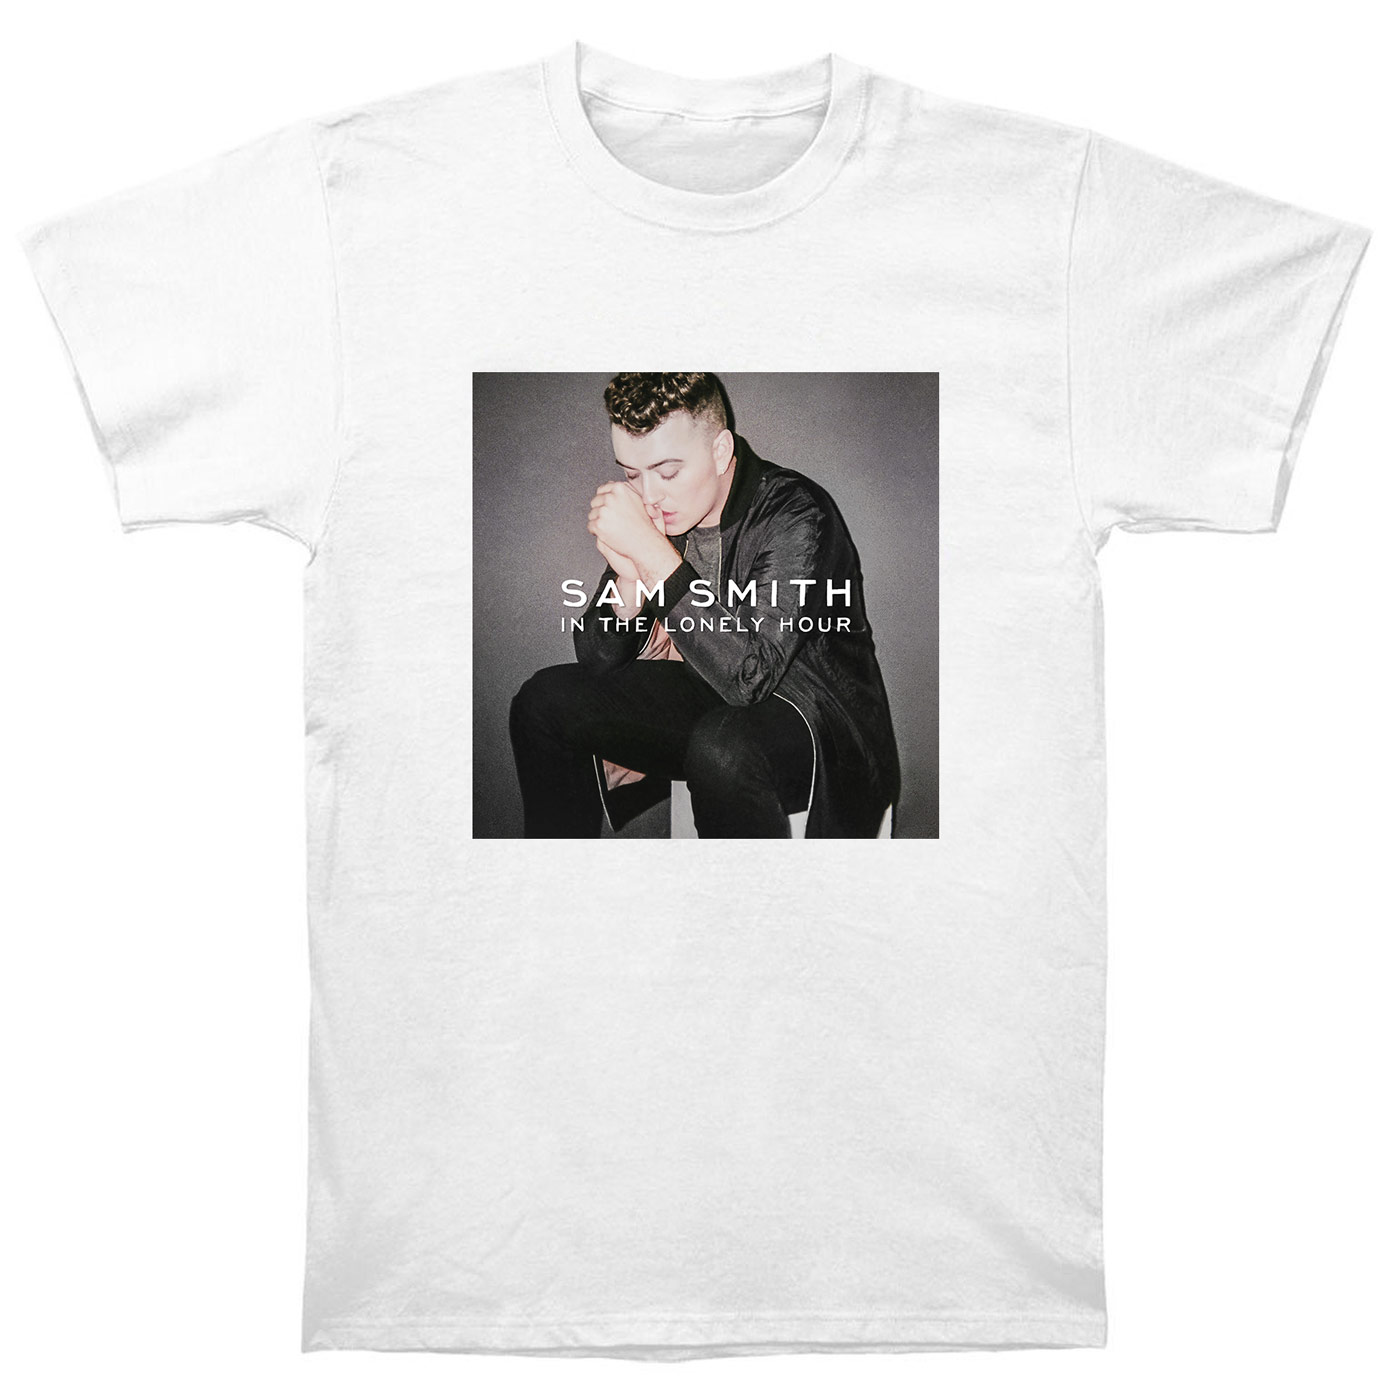 Sam Smith T Shirt Cd In The Lonely Hour Vinyl Poster Drowning Shadows Edition ST1